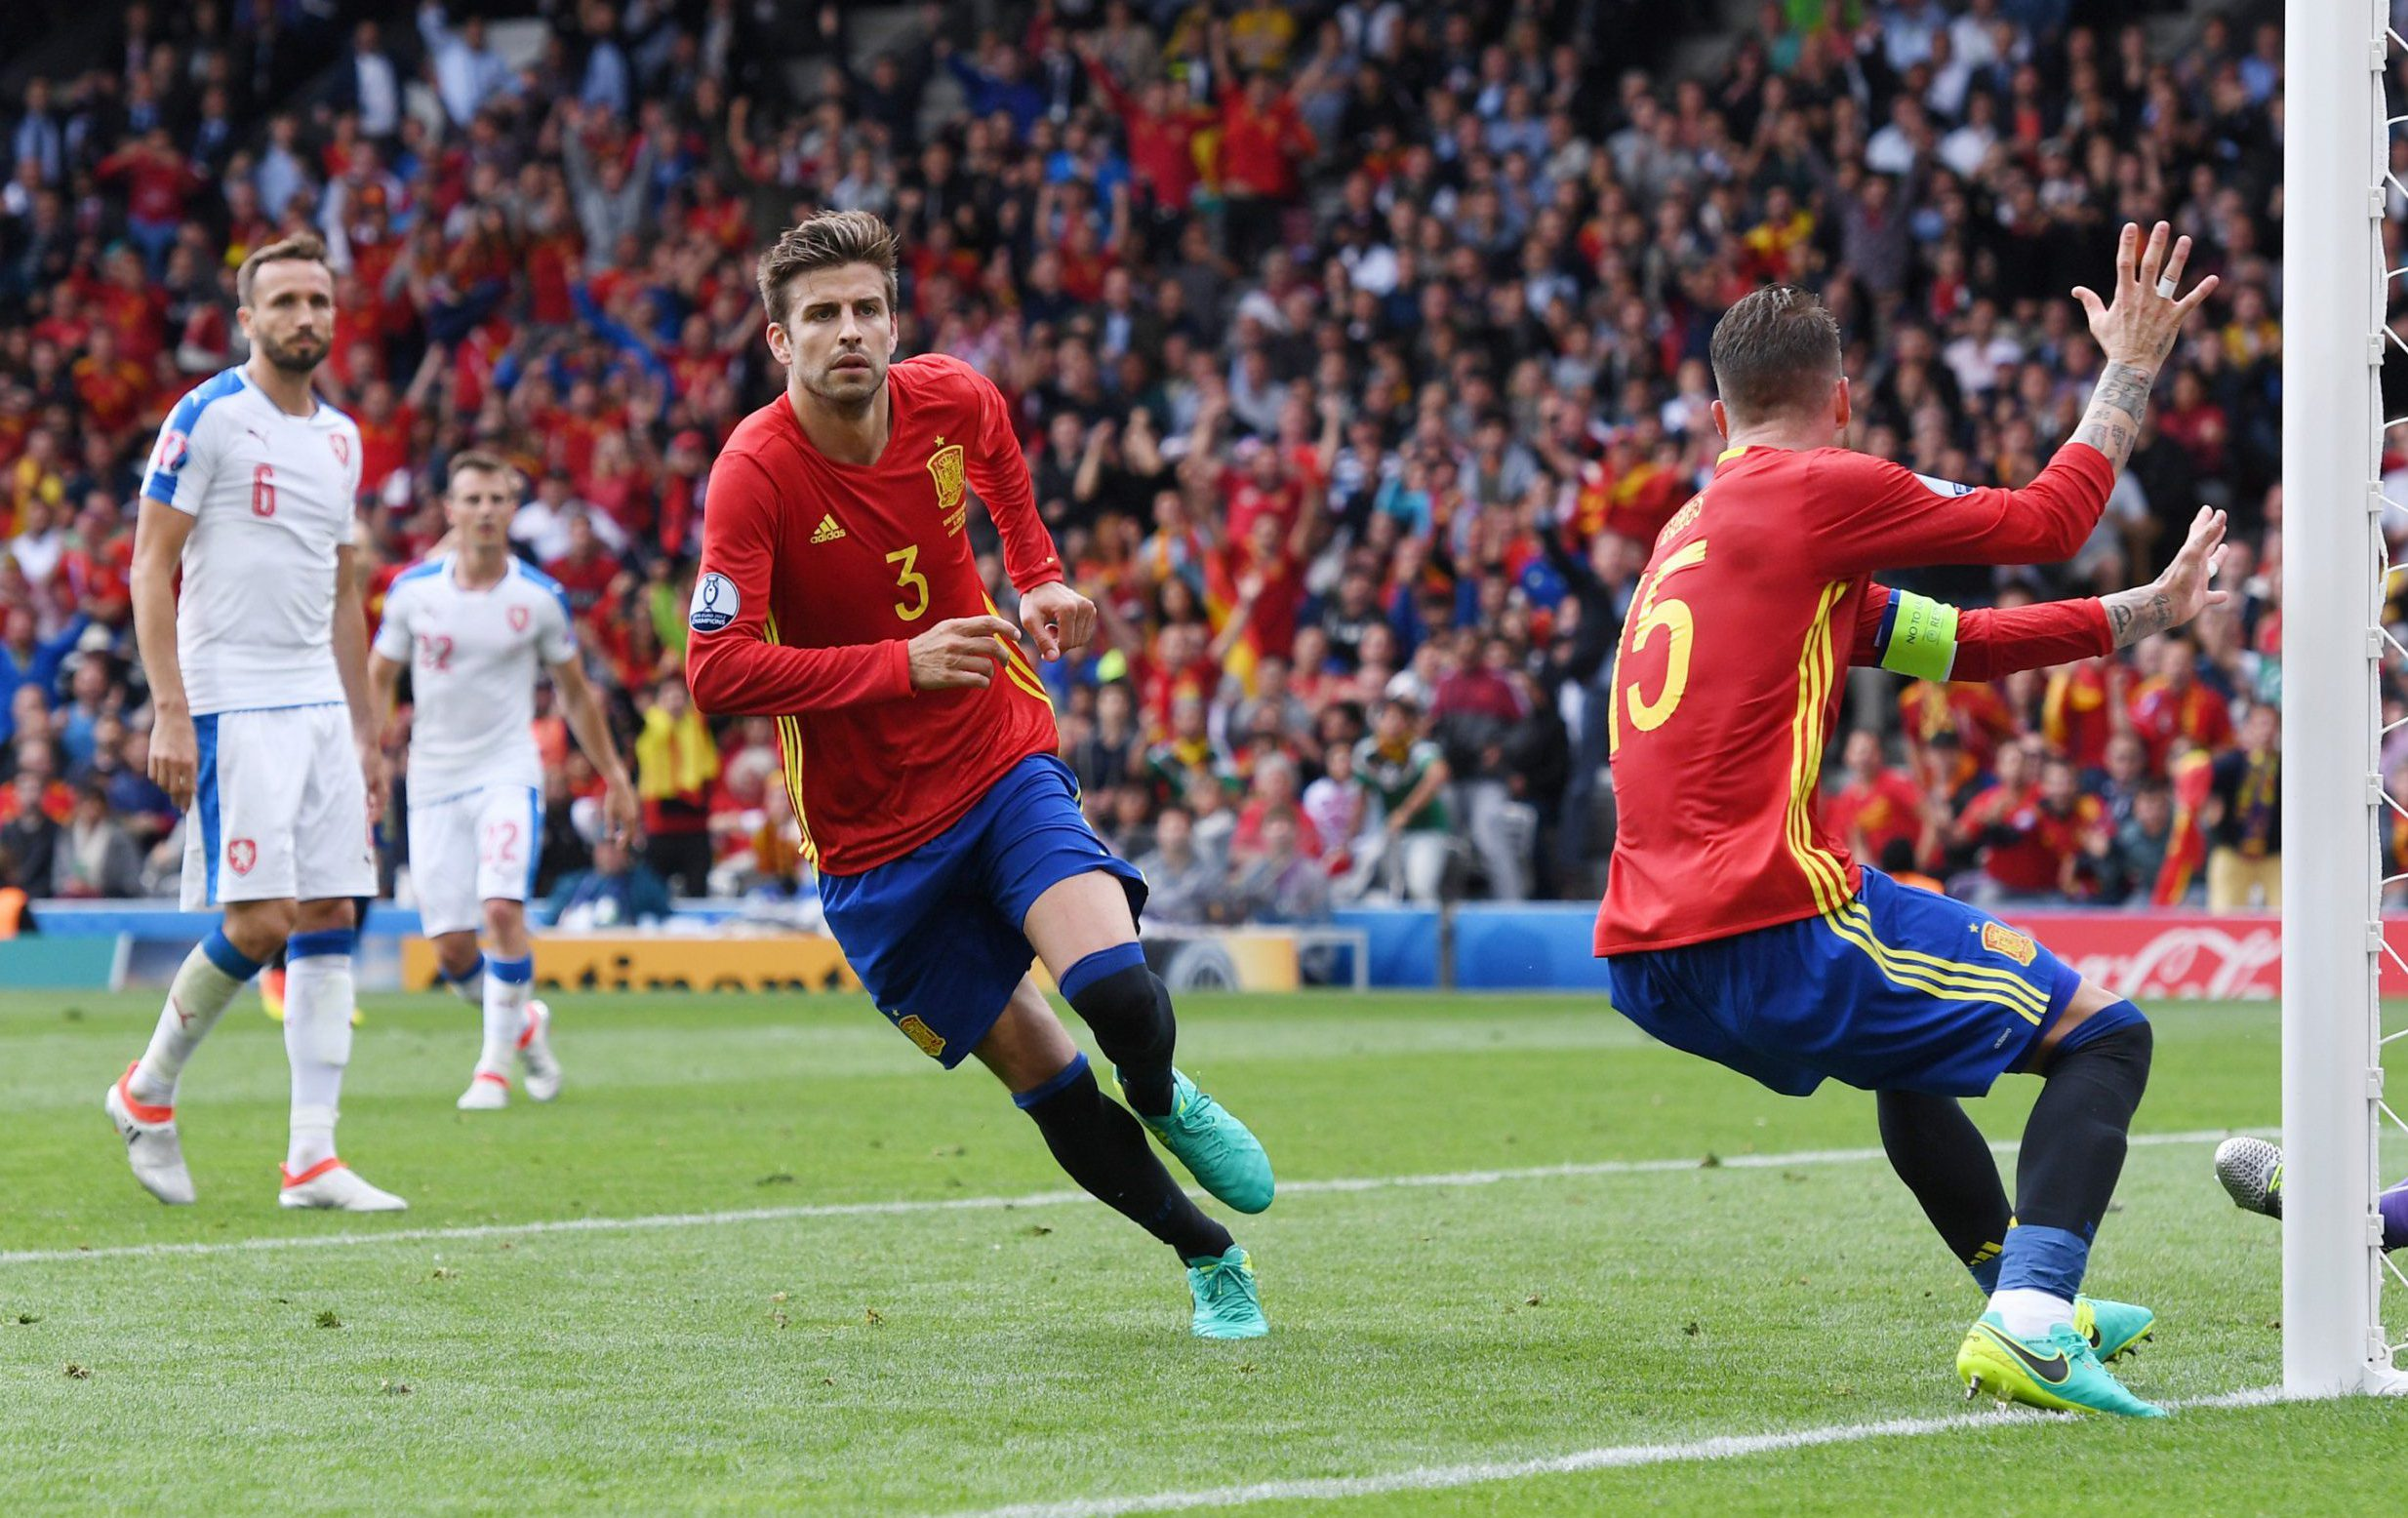 TOULOUSE, FRANCE - JUNE 13: Gerard Pique (C) of Spain celebrates scoring his team's first goal during the UEFA EURO 2016 Group D match between Spain and Czech Republic at Stadium Municipal on June 13, 2016 in Toulouse, France. (Photo by David Ramos/Getty Images)